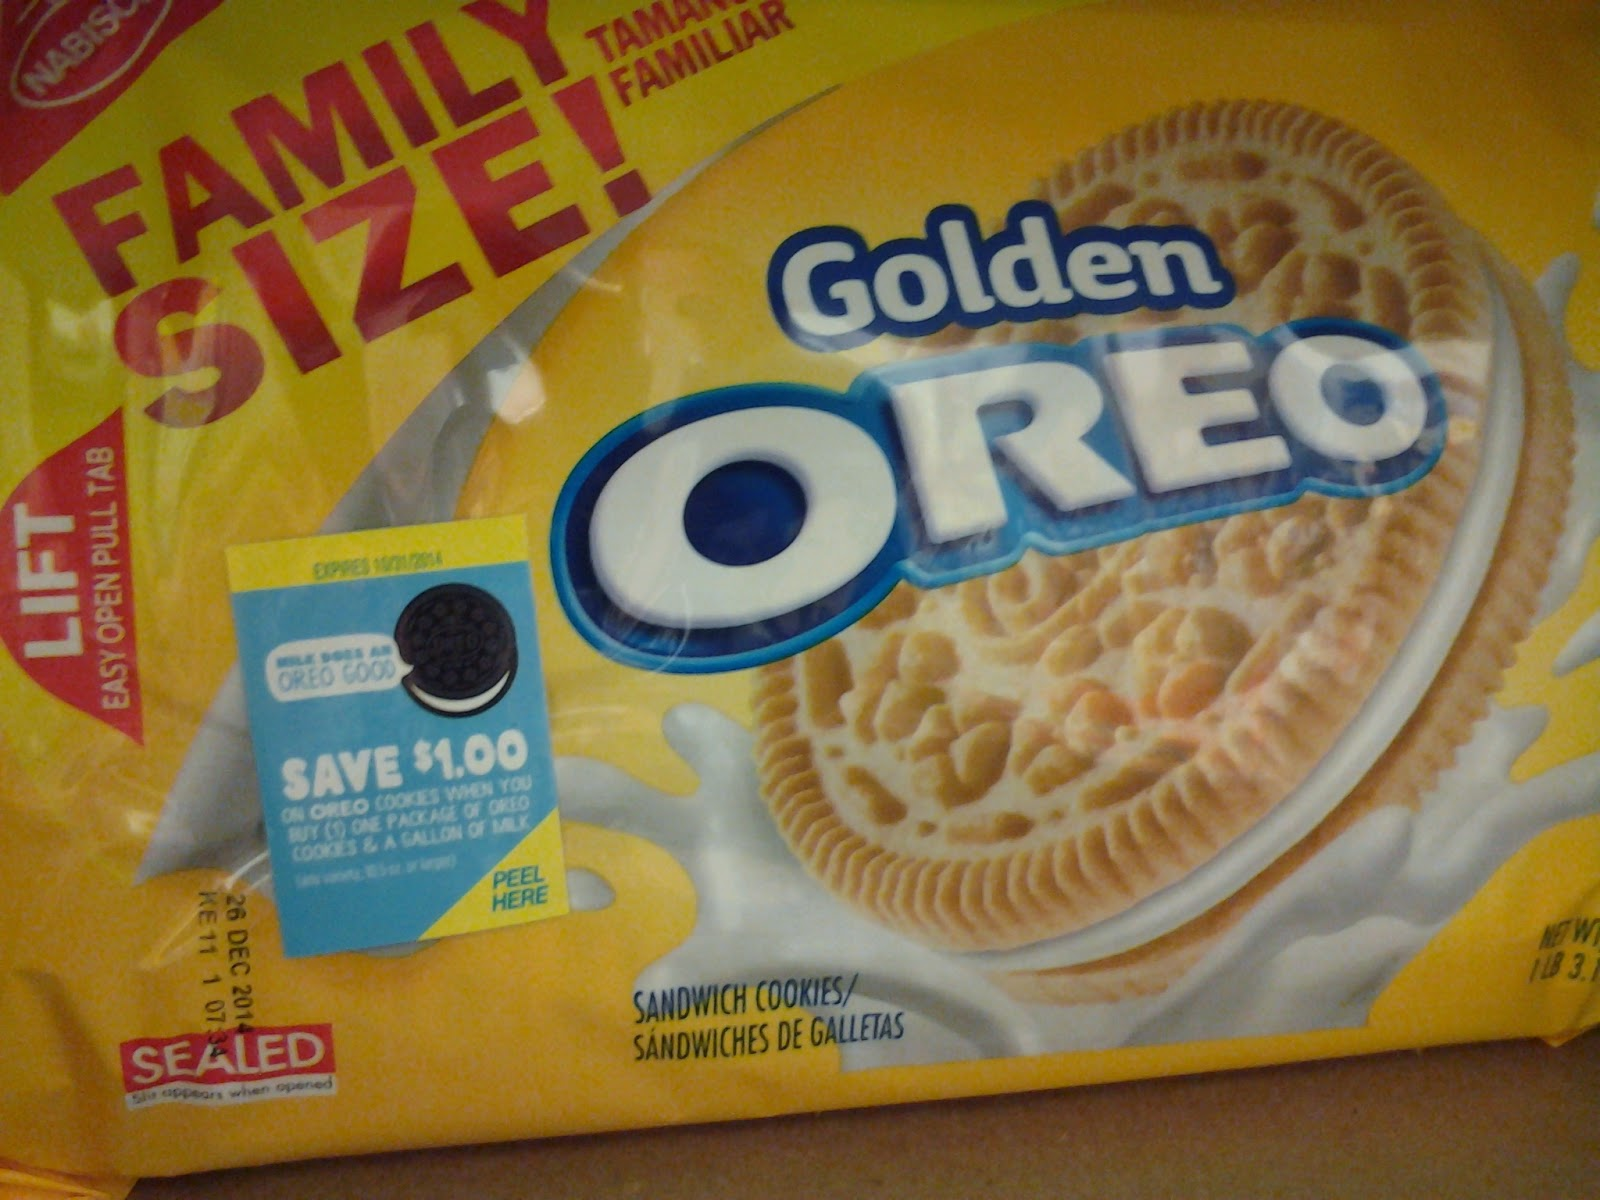 $1.00 off when you buy Oreos and Milk coupon